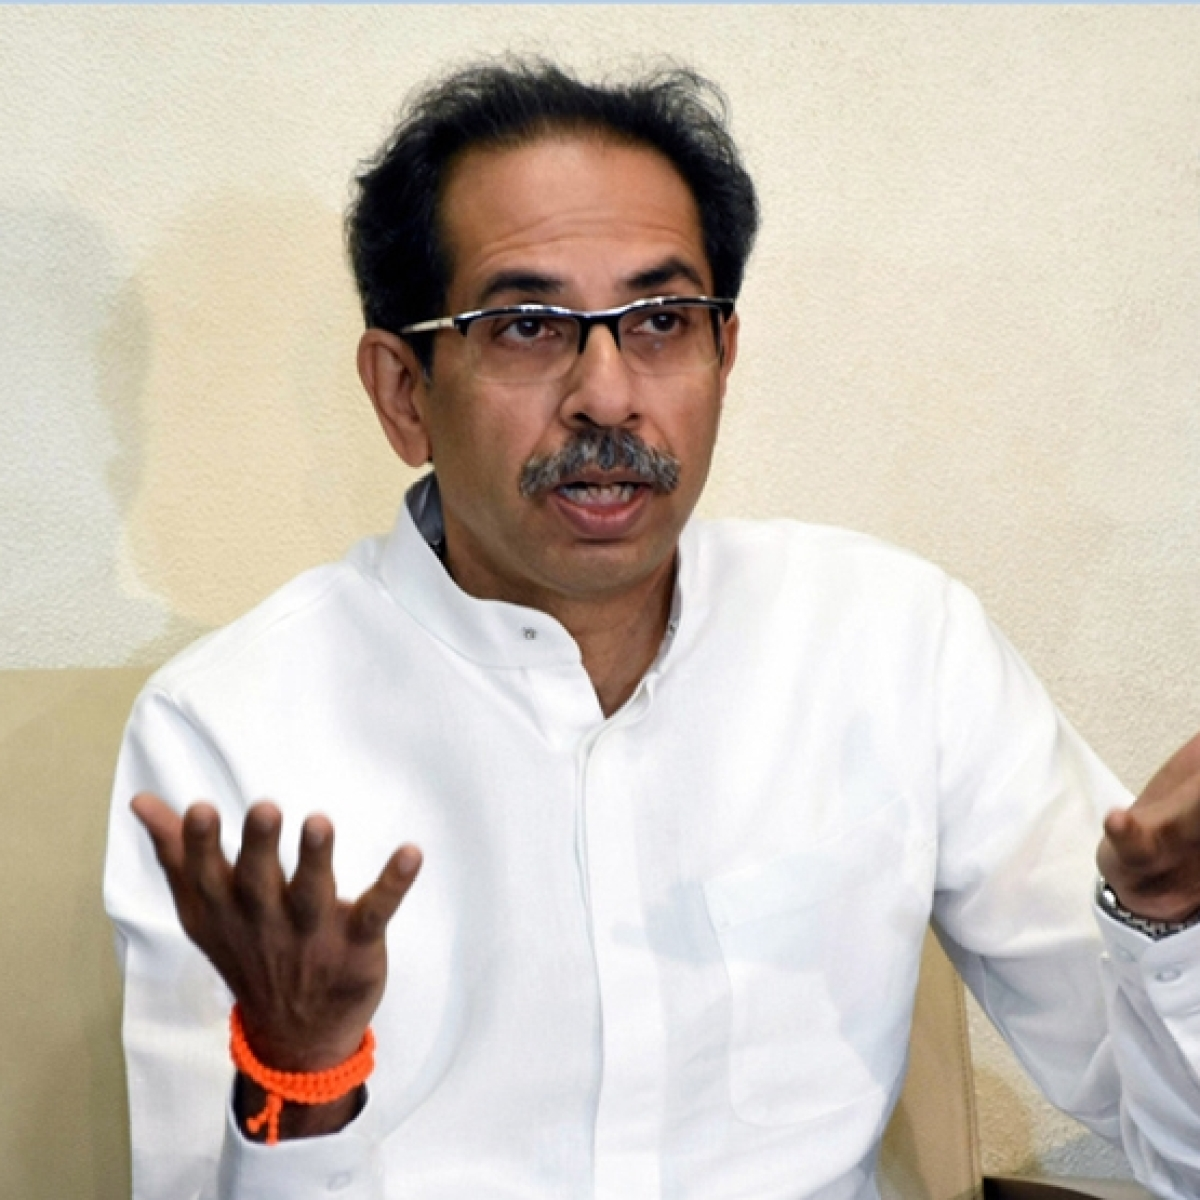 'Mumbai, Nagpur and Pune to be in red zone': Maharashtra CM Uddhav Thackeray